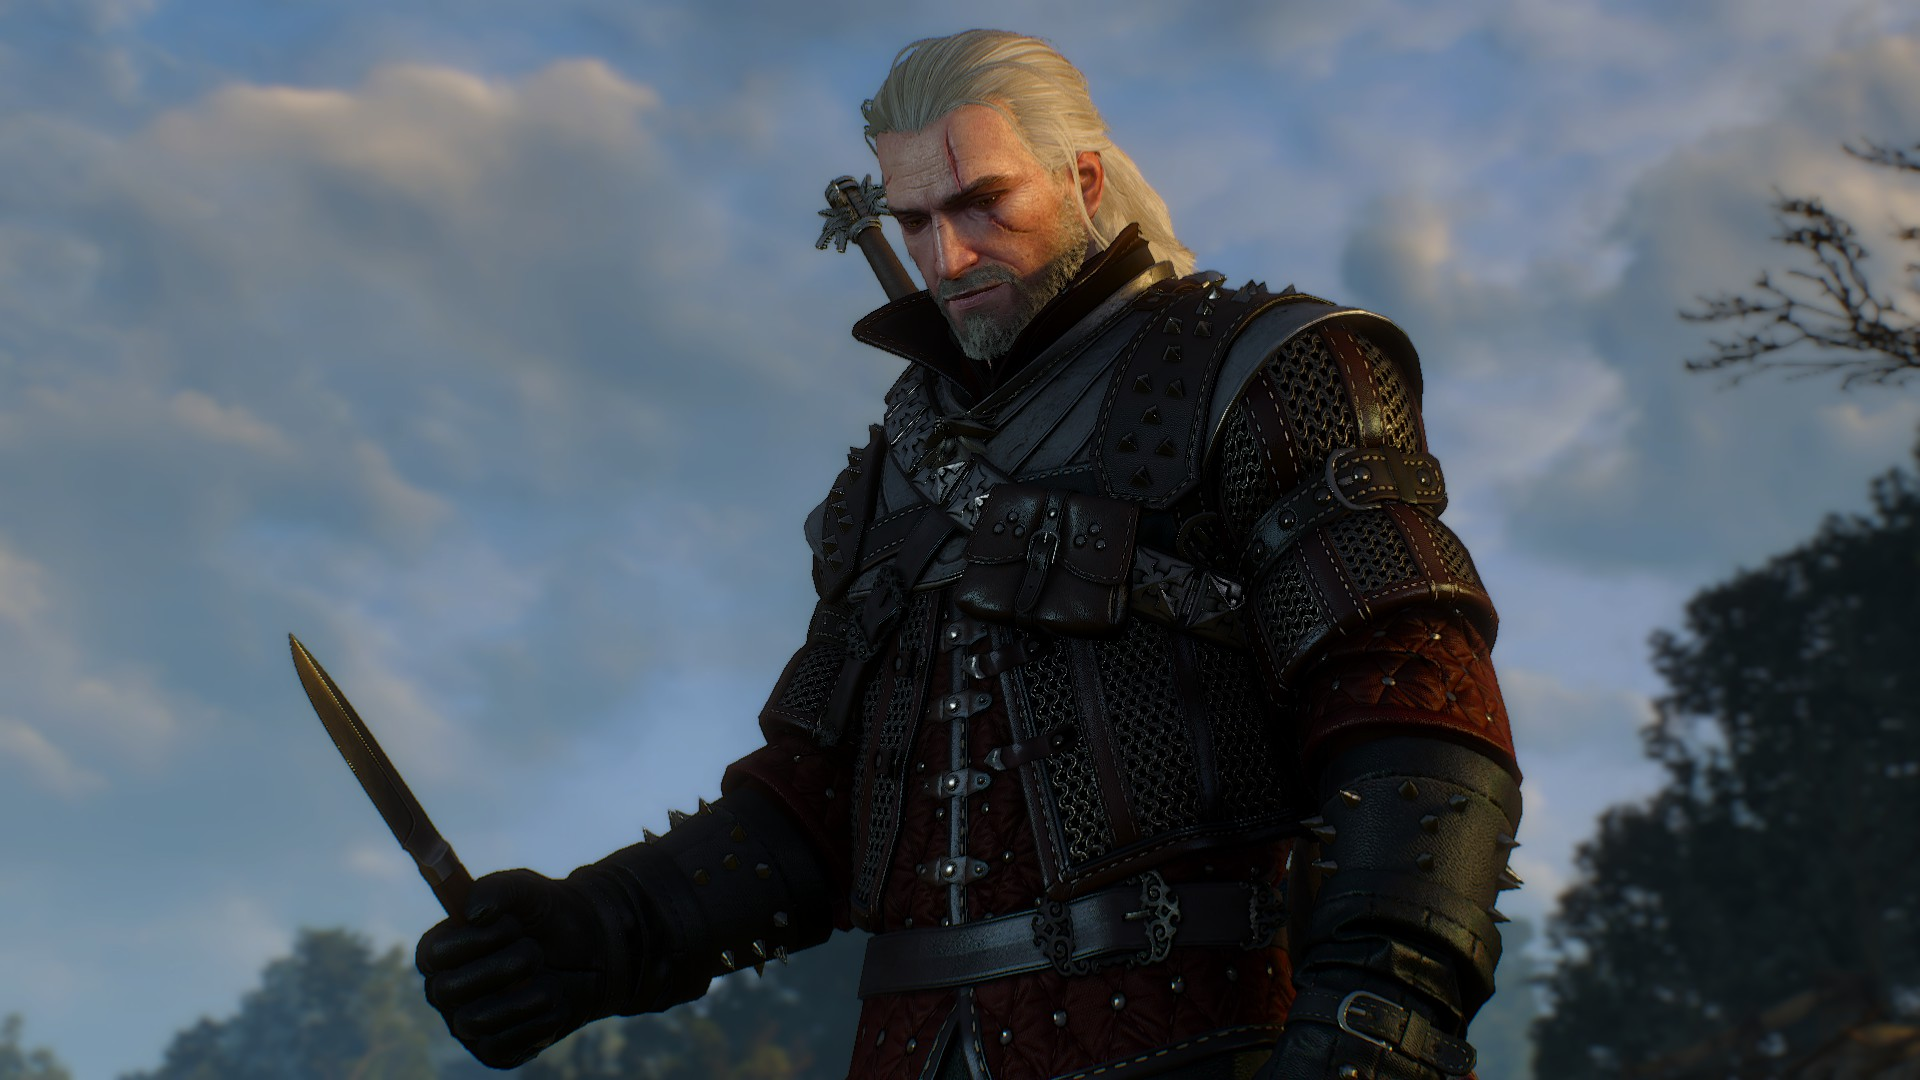 20180826183310_1.jpg - Witcher 3: Wild Hunt, the